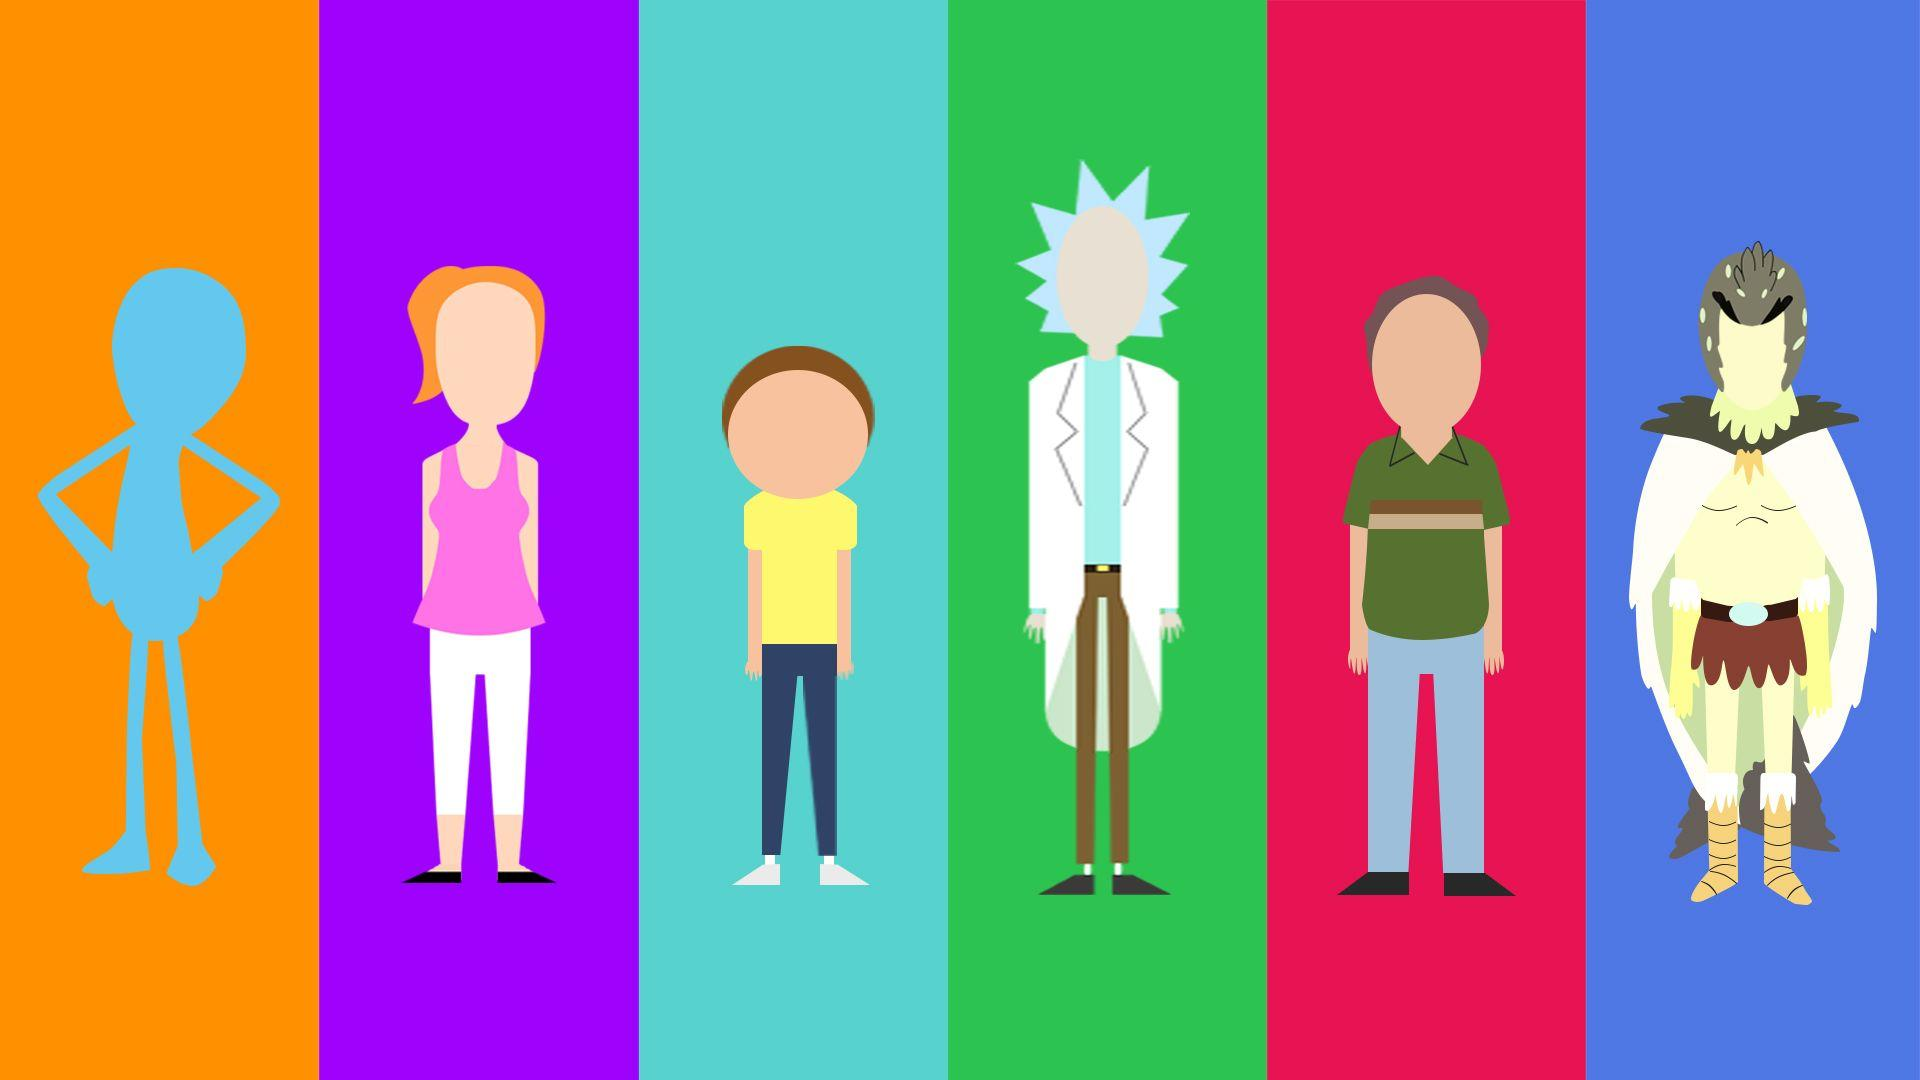 My minimalist Rick and Morty character collection